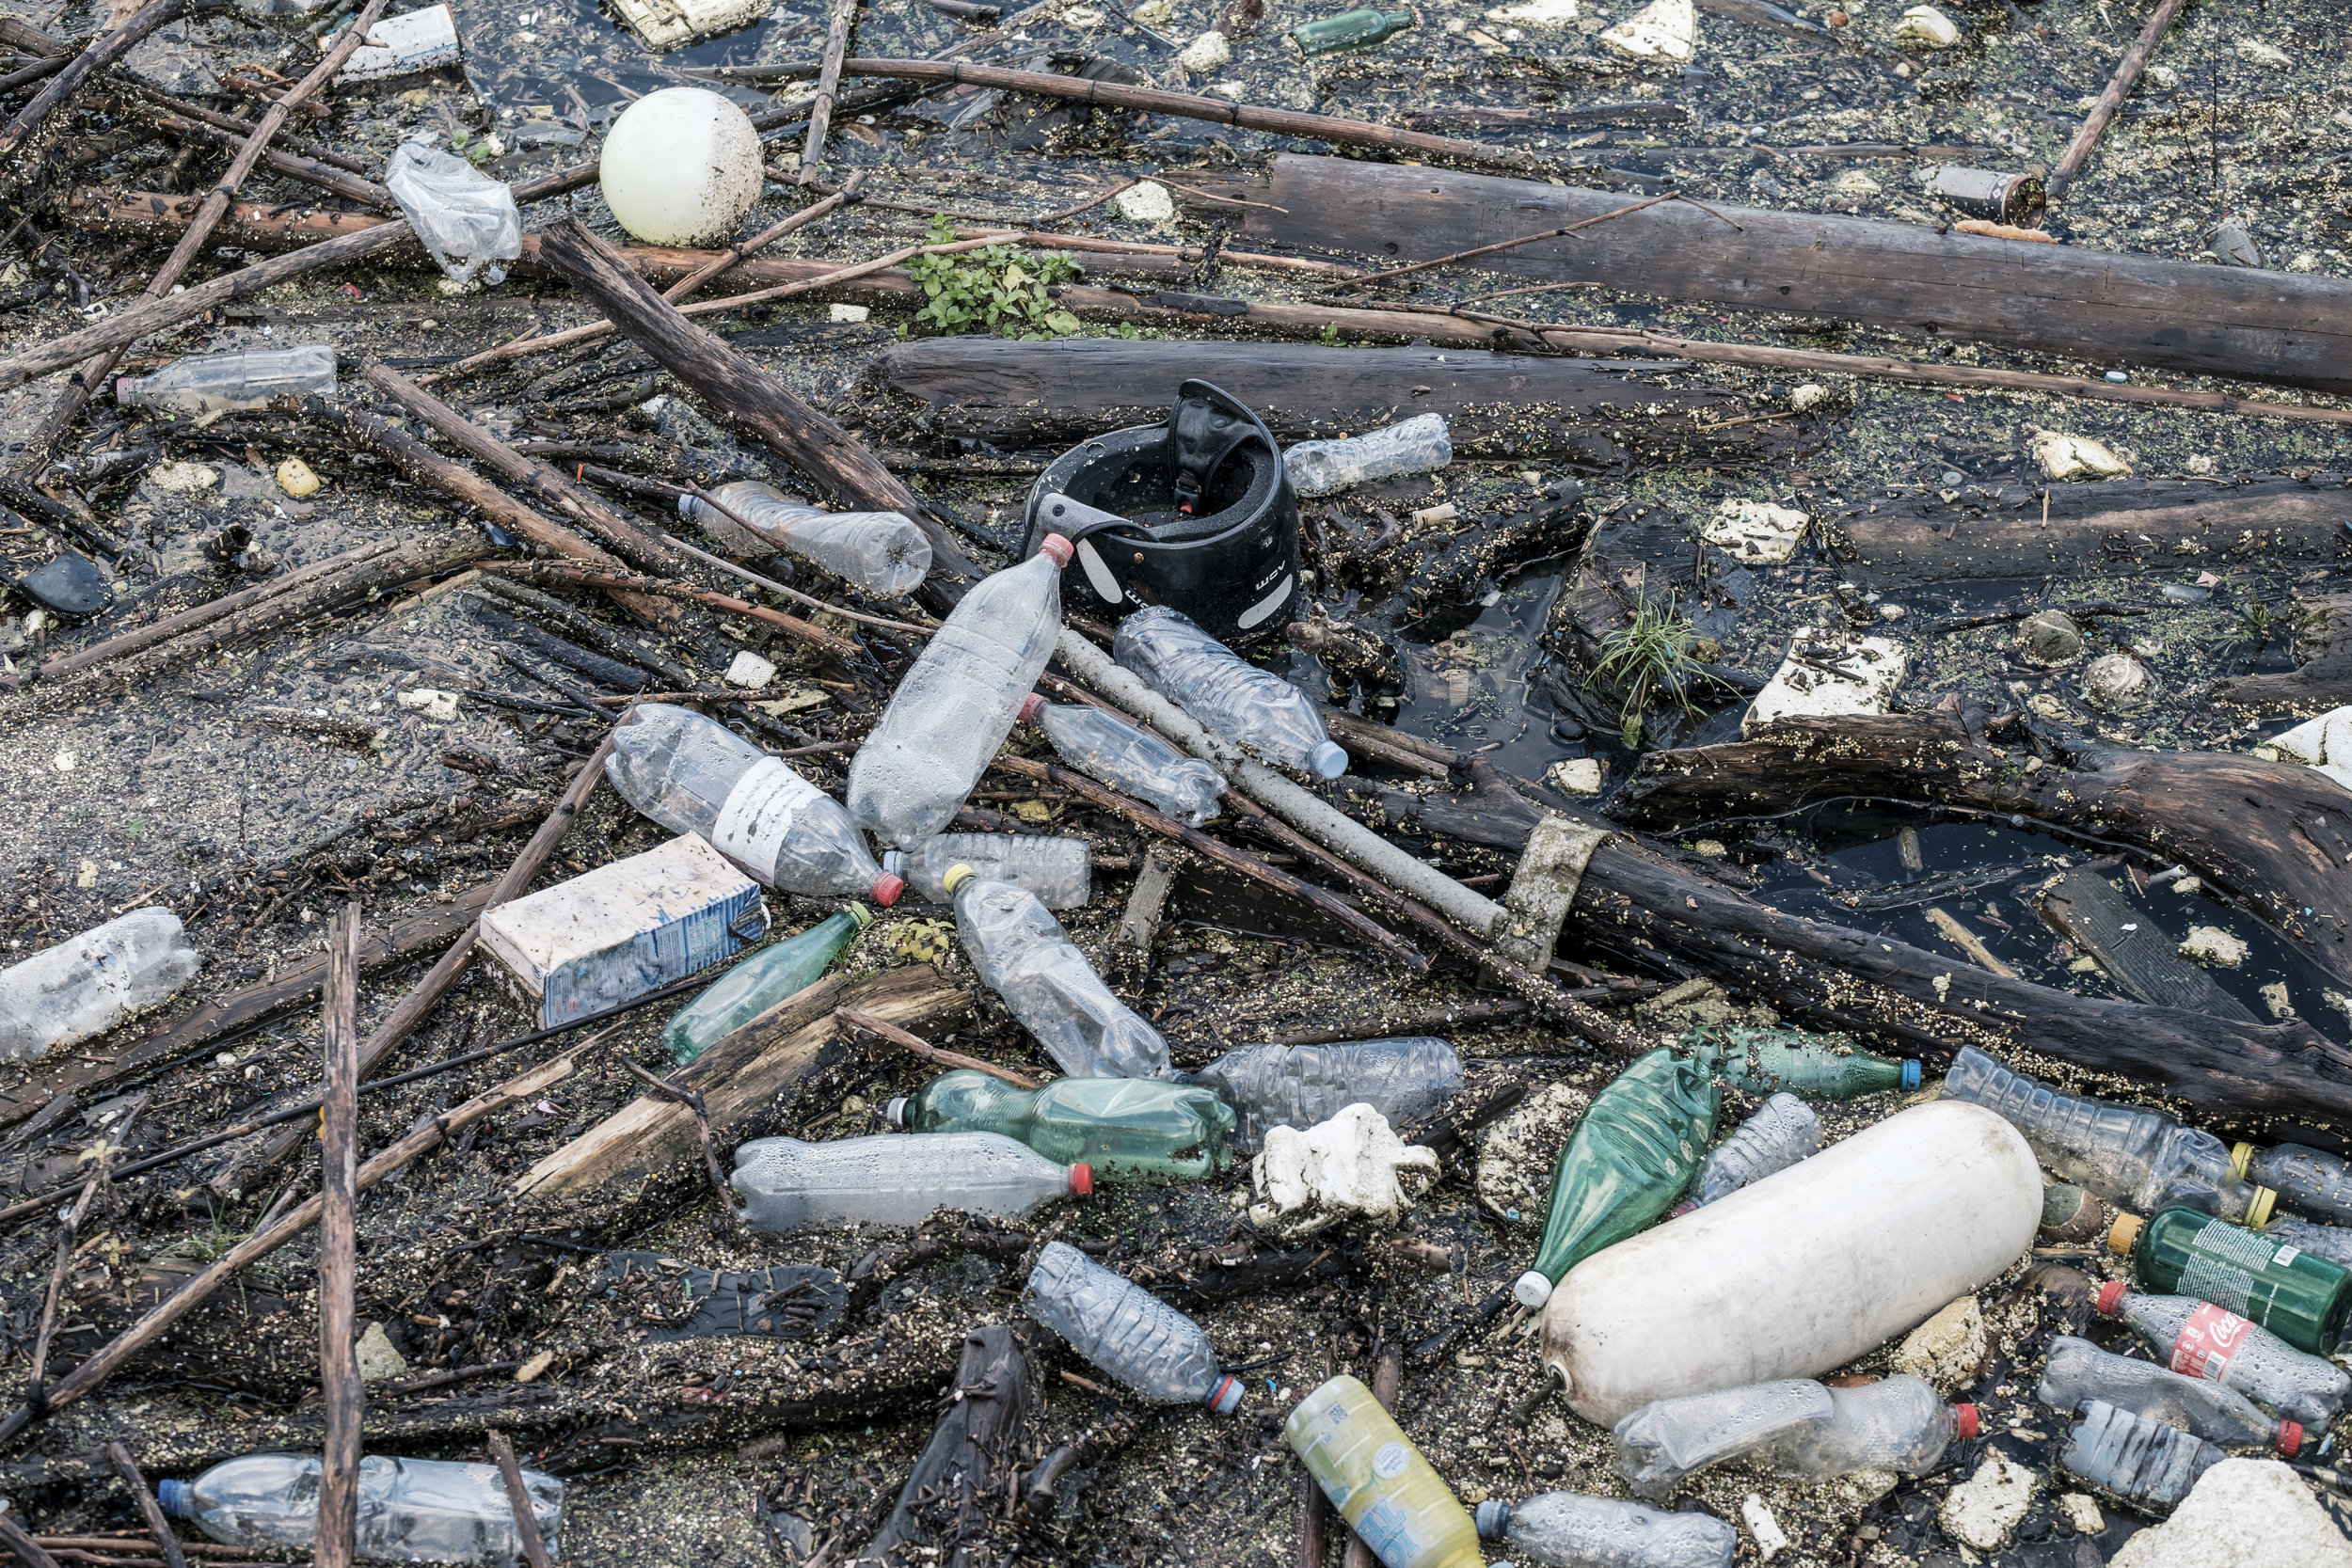 plastic littering the forest